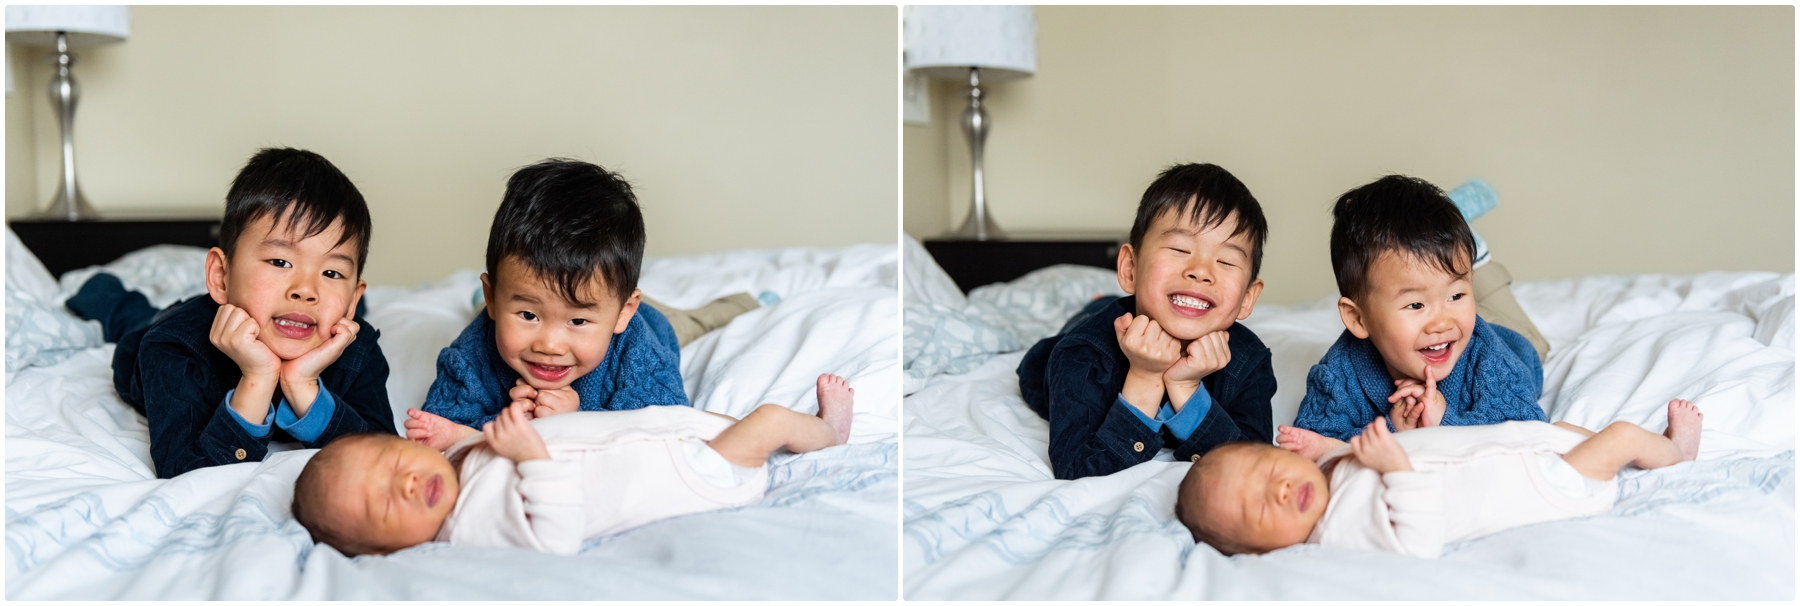 Family of 5 In Home Calgary Lifestyle Newborn Photographer